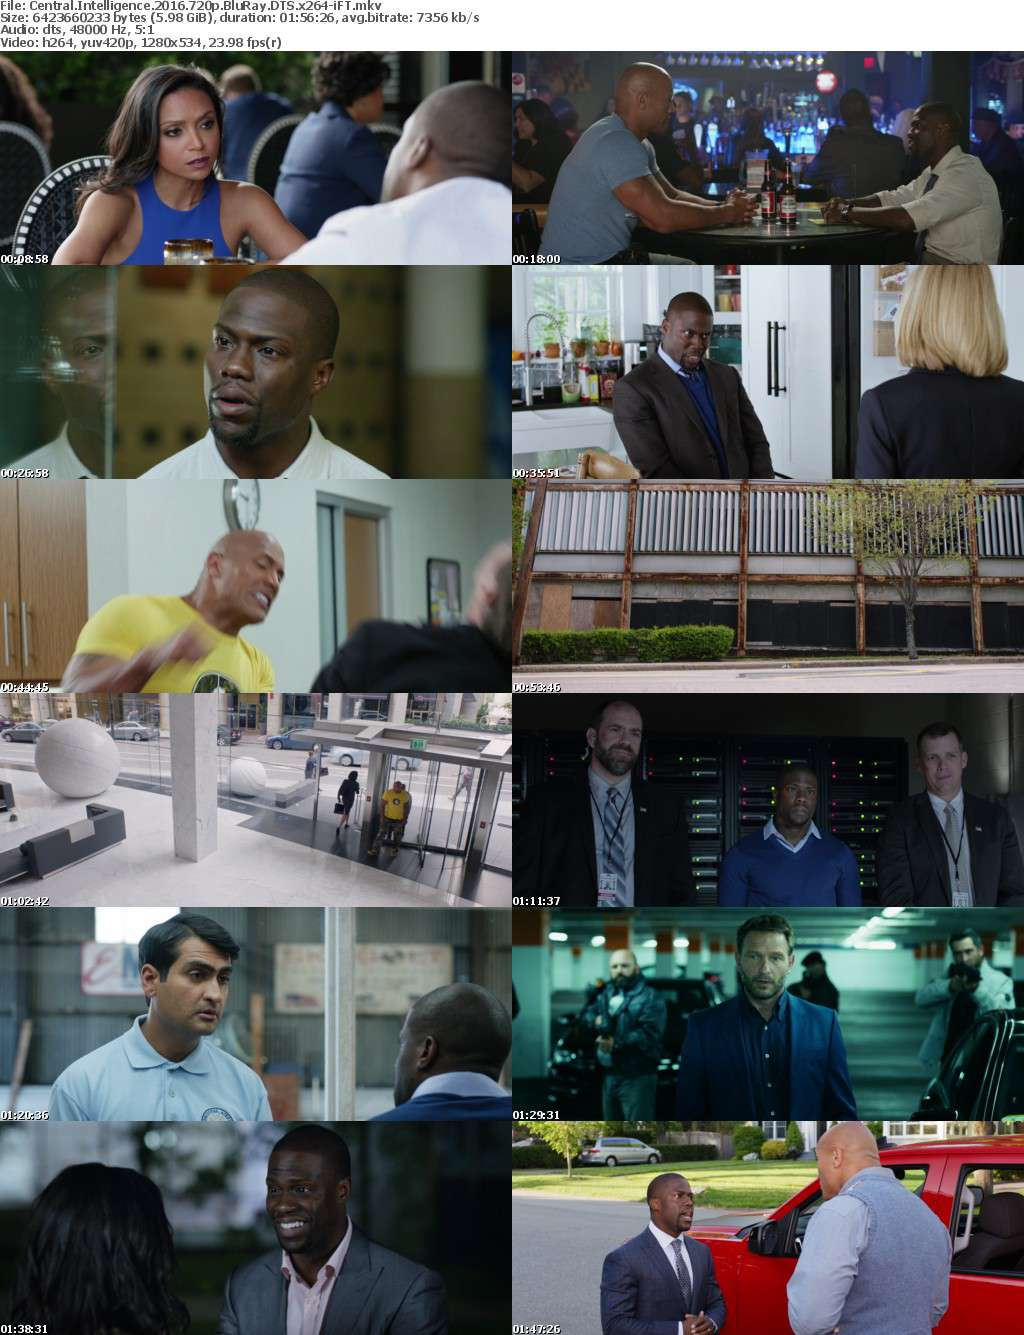 Central Intelligence 2016 720p BluRay DTS x264-iFT